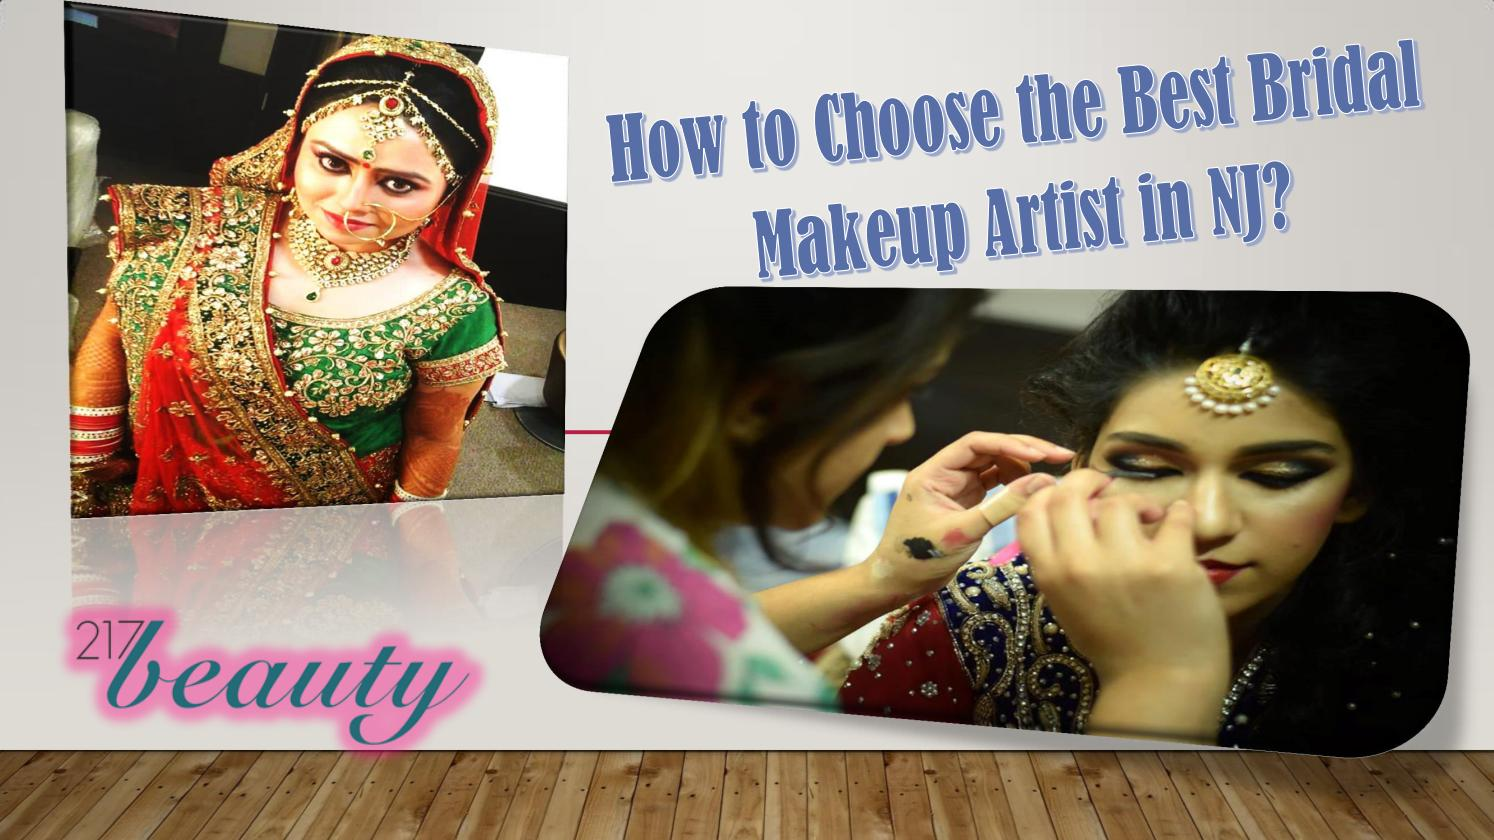 How to choose the best bridal makeup artist in nj